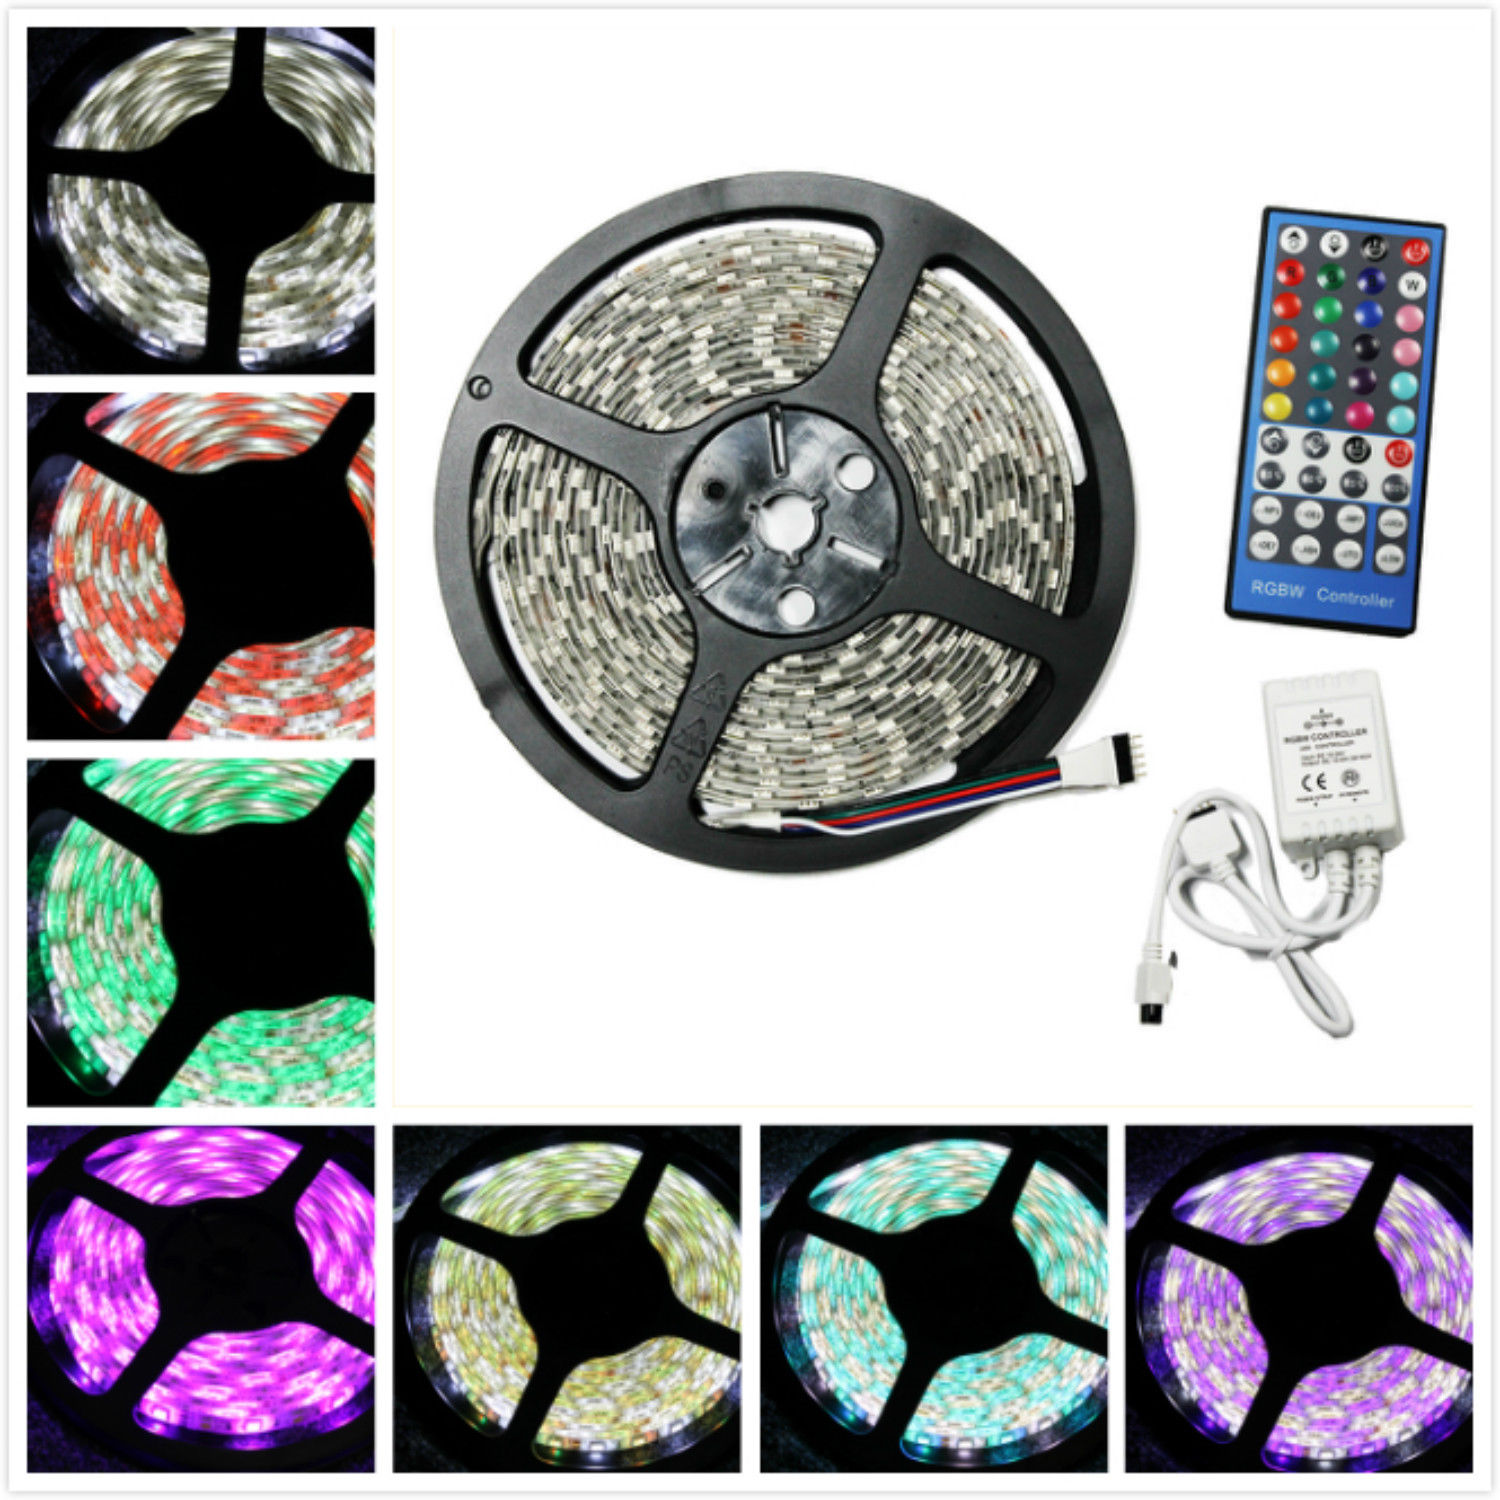 LED4Everything (TM) 5M 16.4ft 12v SMD RGBW RGB + Cool White 5050 IP65 Waterproof 300 LED Strip Light + 40Key RGBW Remote Controller + 12V 5A Power Supply